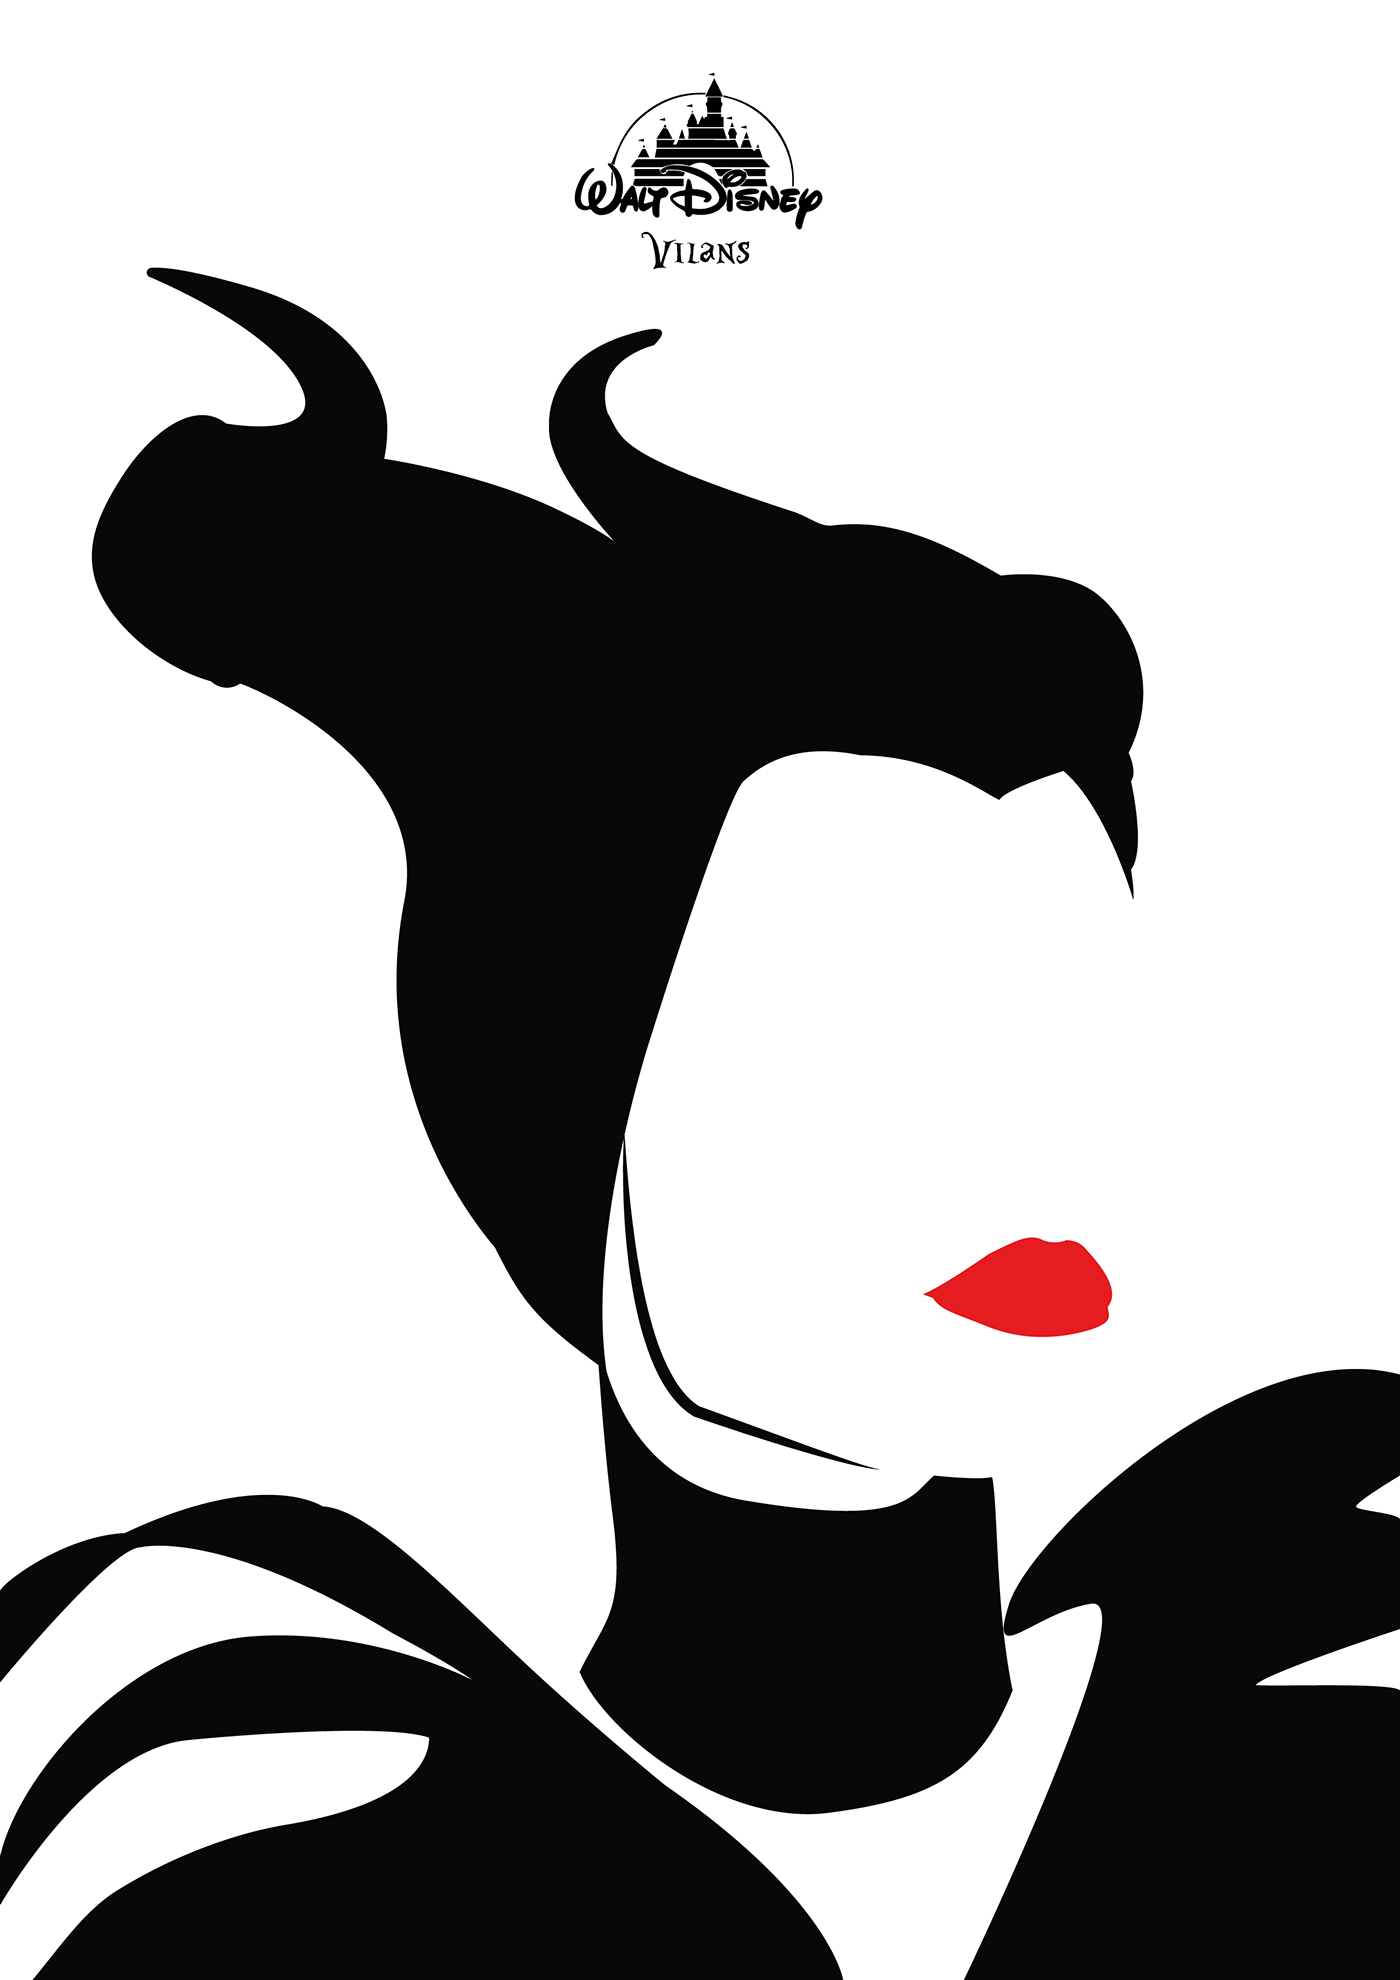 Transparent Silhouette Disney Villans